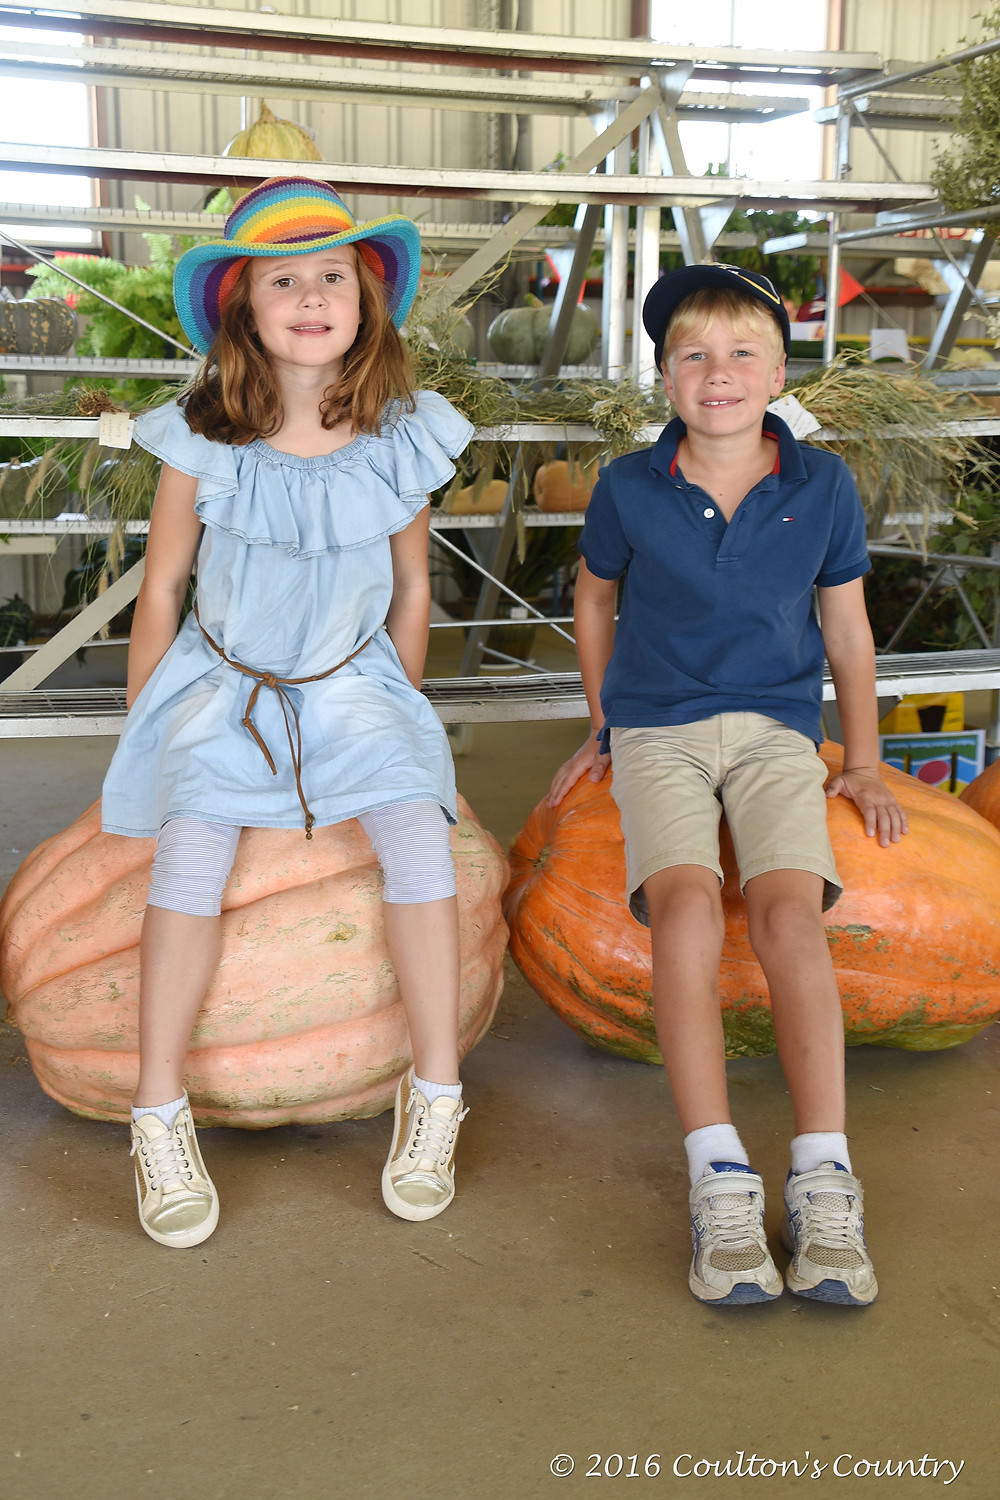 Vivienne and Lochlan Fraser, Chinchilla, were impressed by the size of the pumpkins.